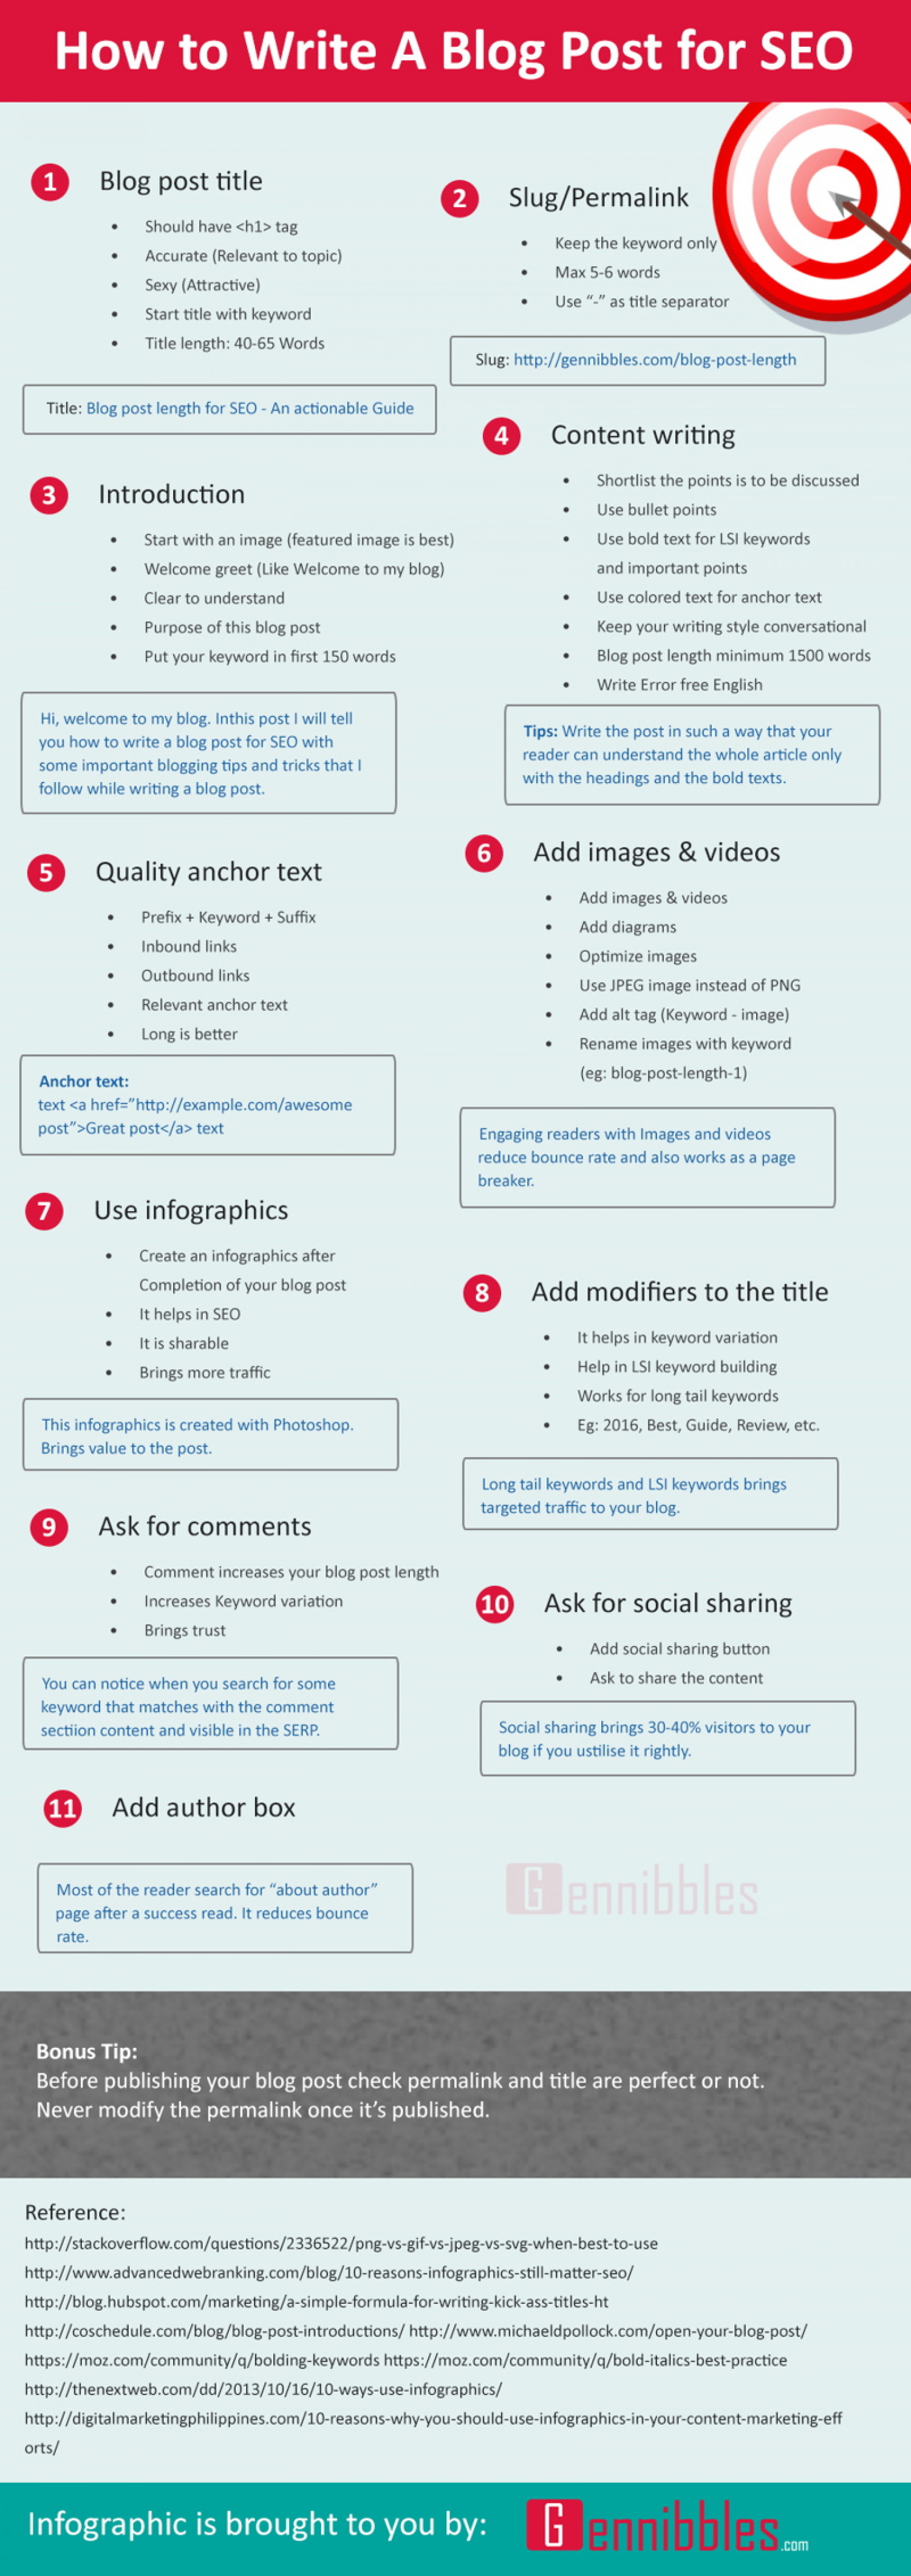 How To Write A Blog Post For SEO Infographic